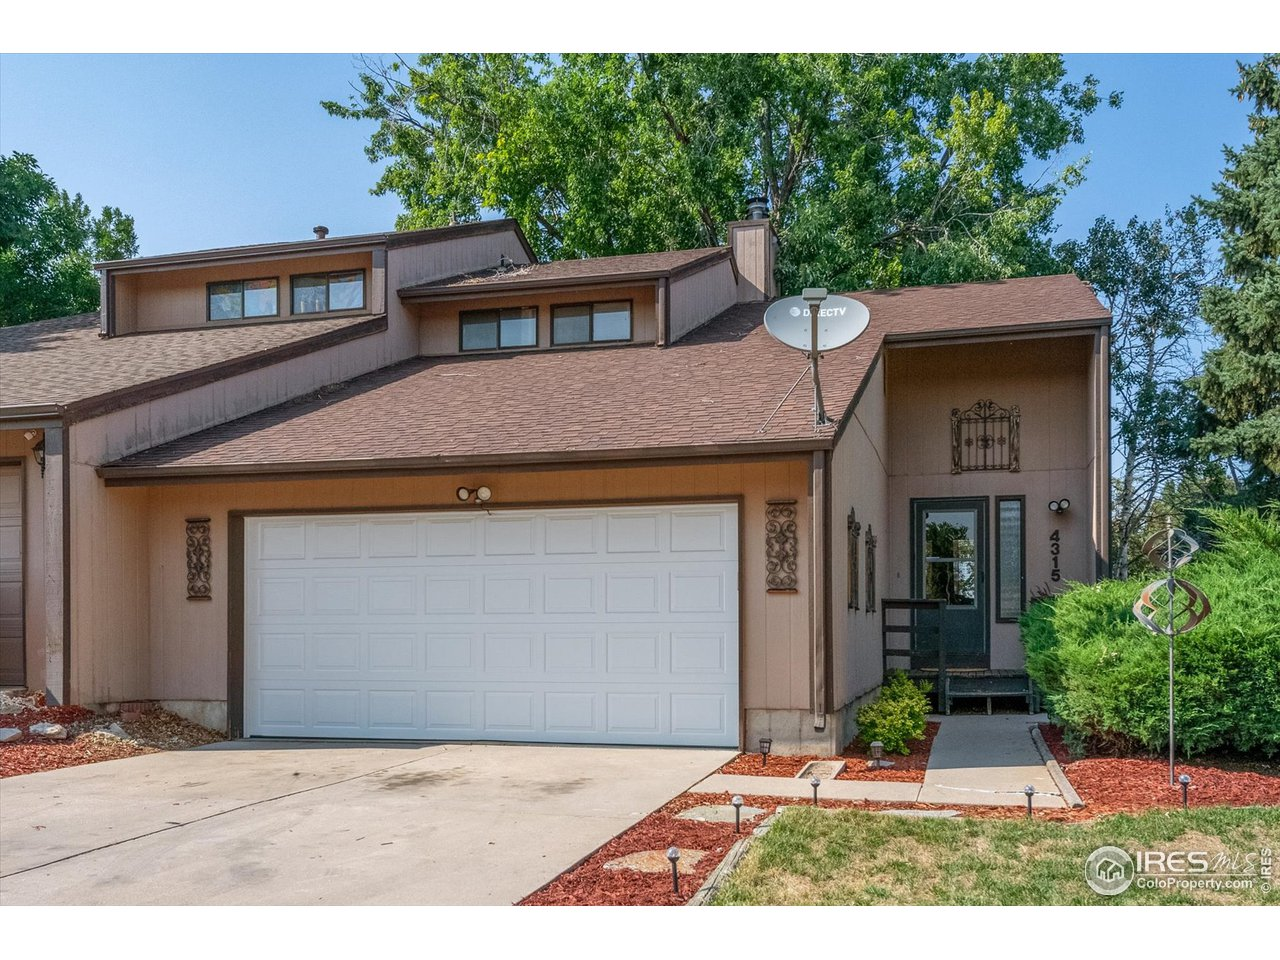 4315 W 9th St Rd, Greeley CO 80634